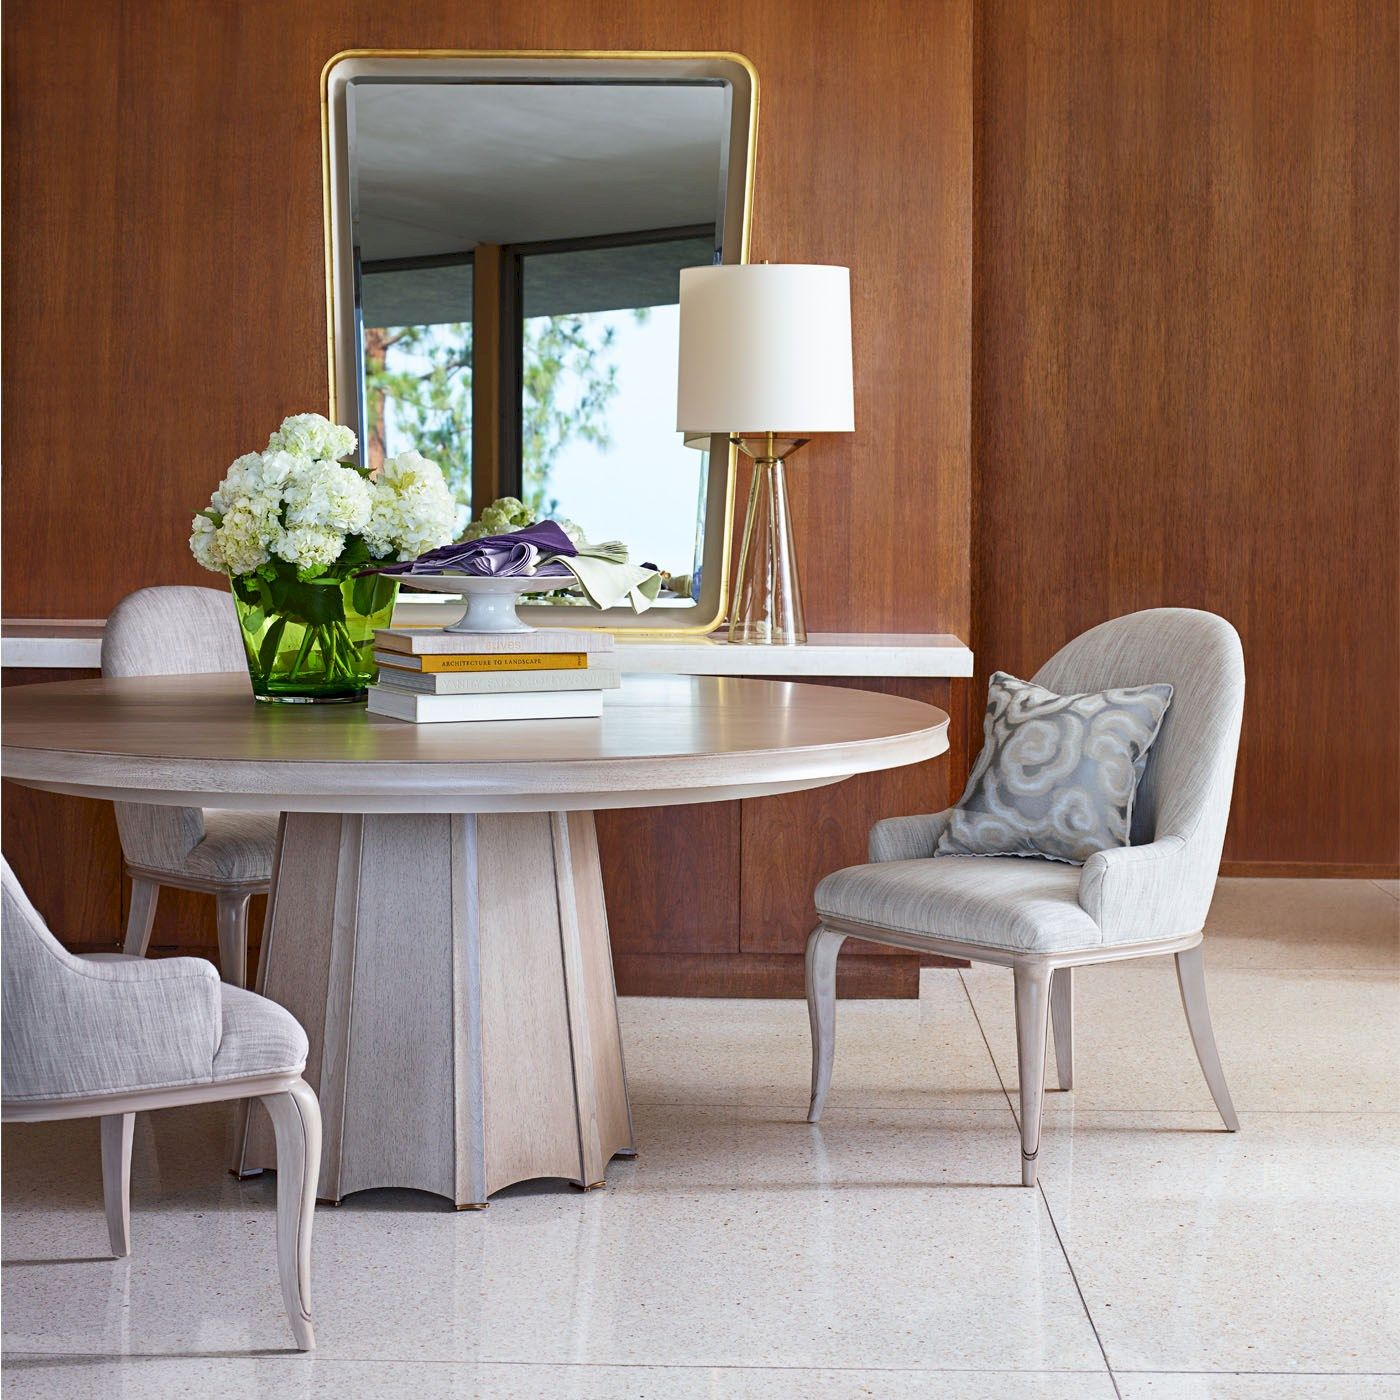 Casual Dining Room Ideas With Couches: THE BARBARA BARRY COLLECTION